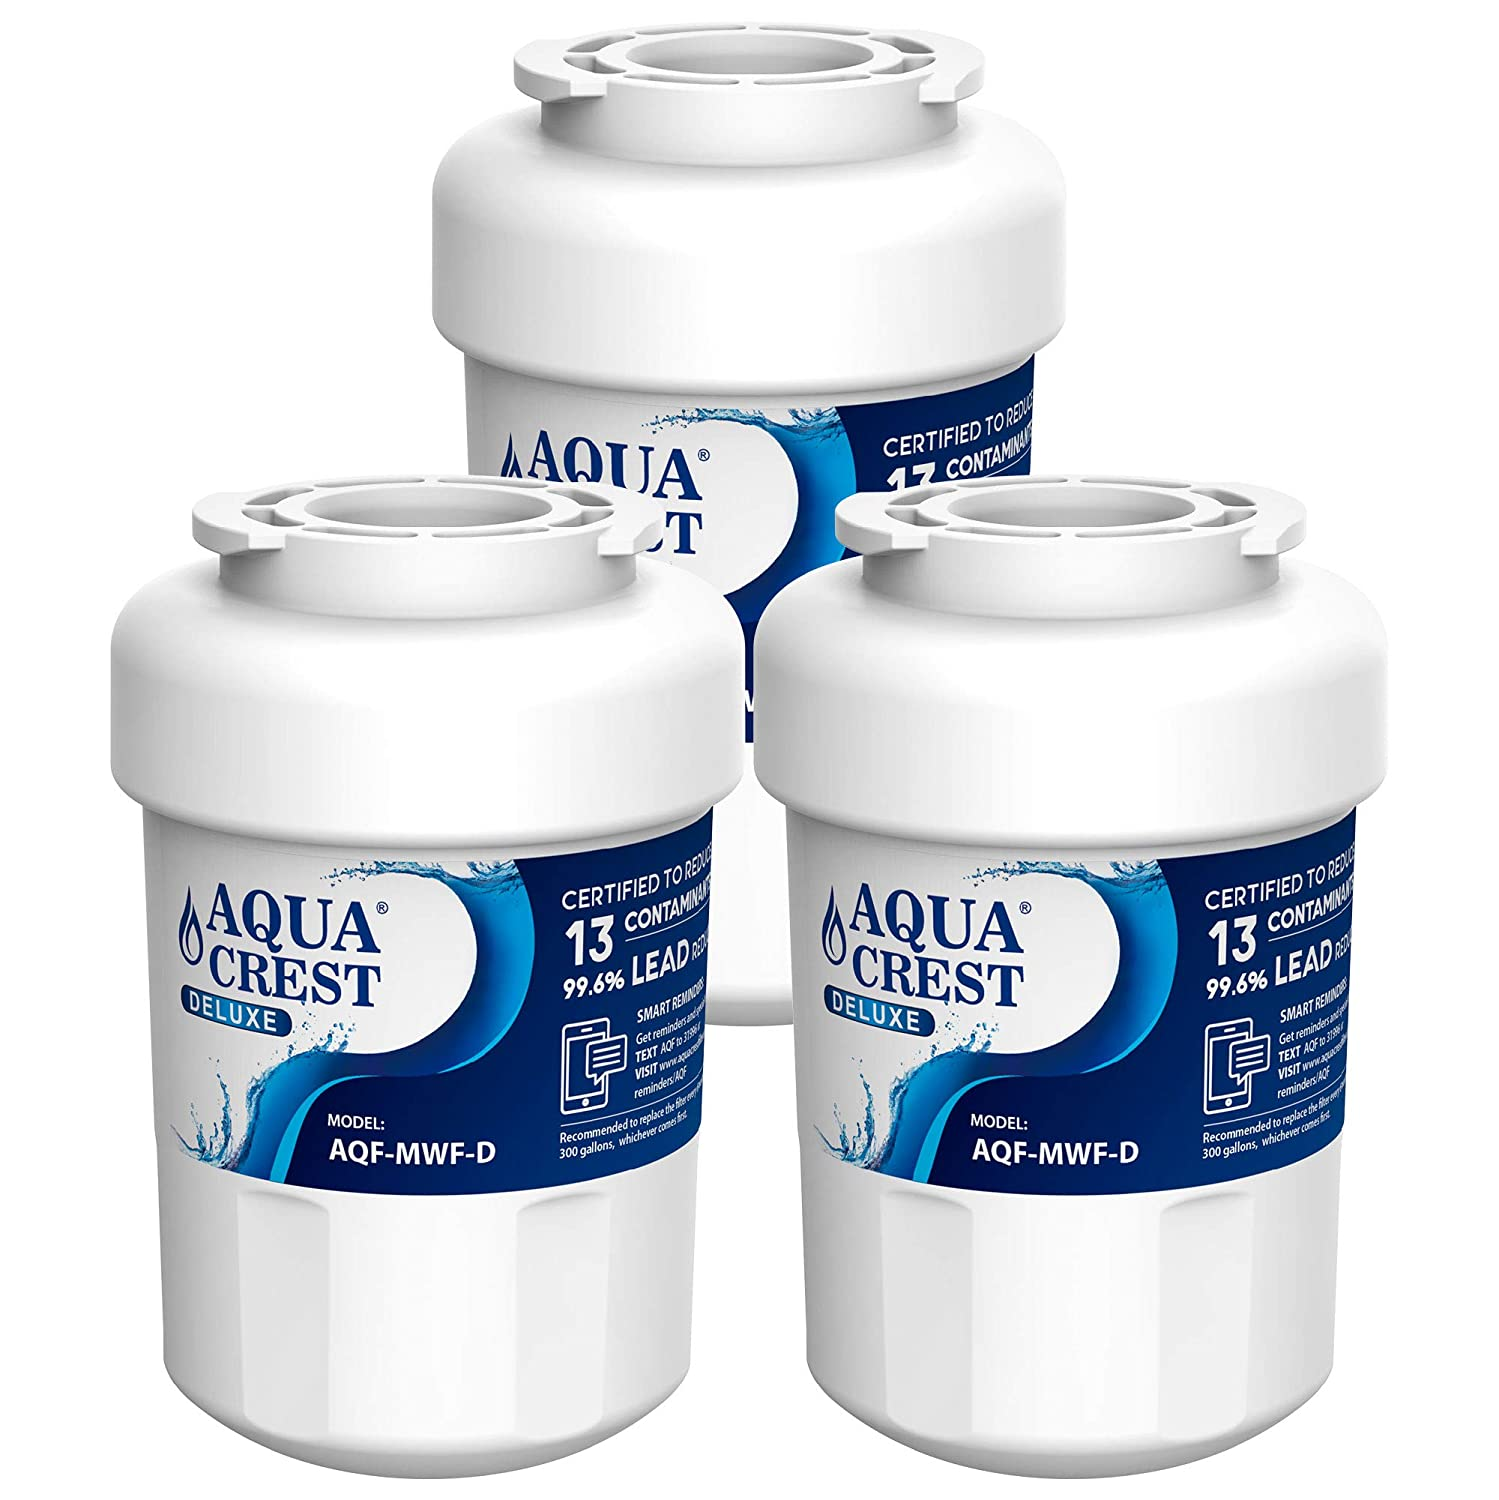 AQUACREST MWF NSF 401 Certified to Reduce Lead and More, Compatible with GE MWF, SmartWater, MWFP, MWFA, GWF, HDX FMG-1, WFC1201, GSE25GSHECSS, RWF1060 Refrigerator Water Filter (Pack of 3)